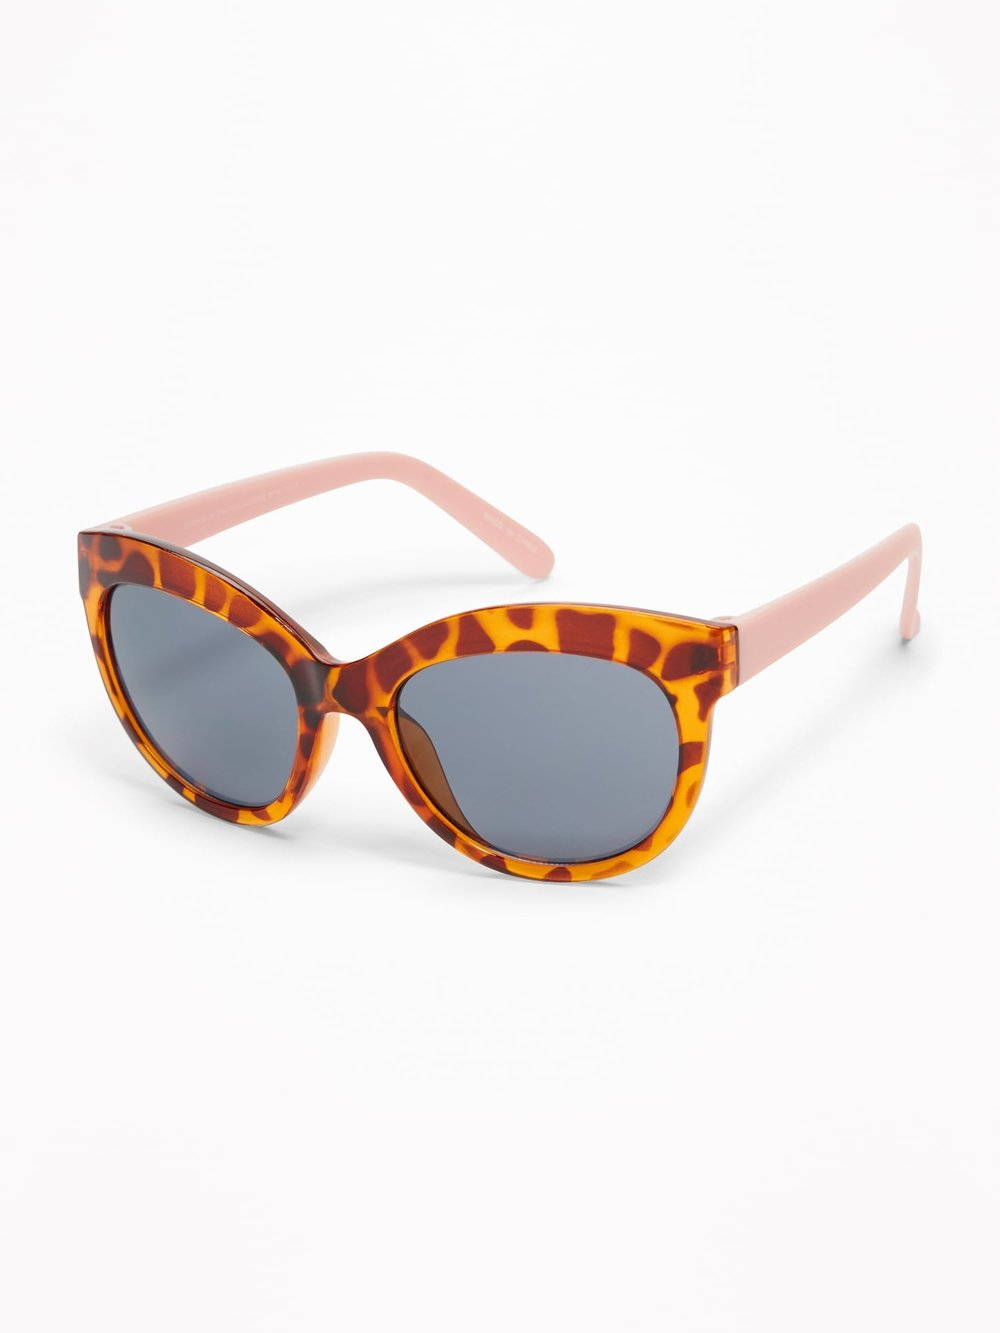 Cute Kids Sunglasses - Baby Sunglasses - Toddler Sunglasses